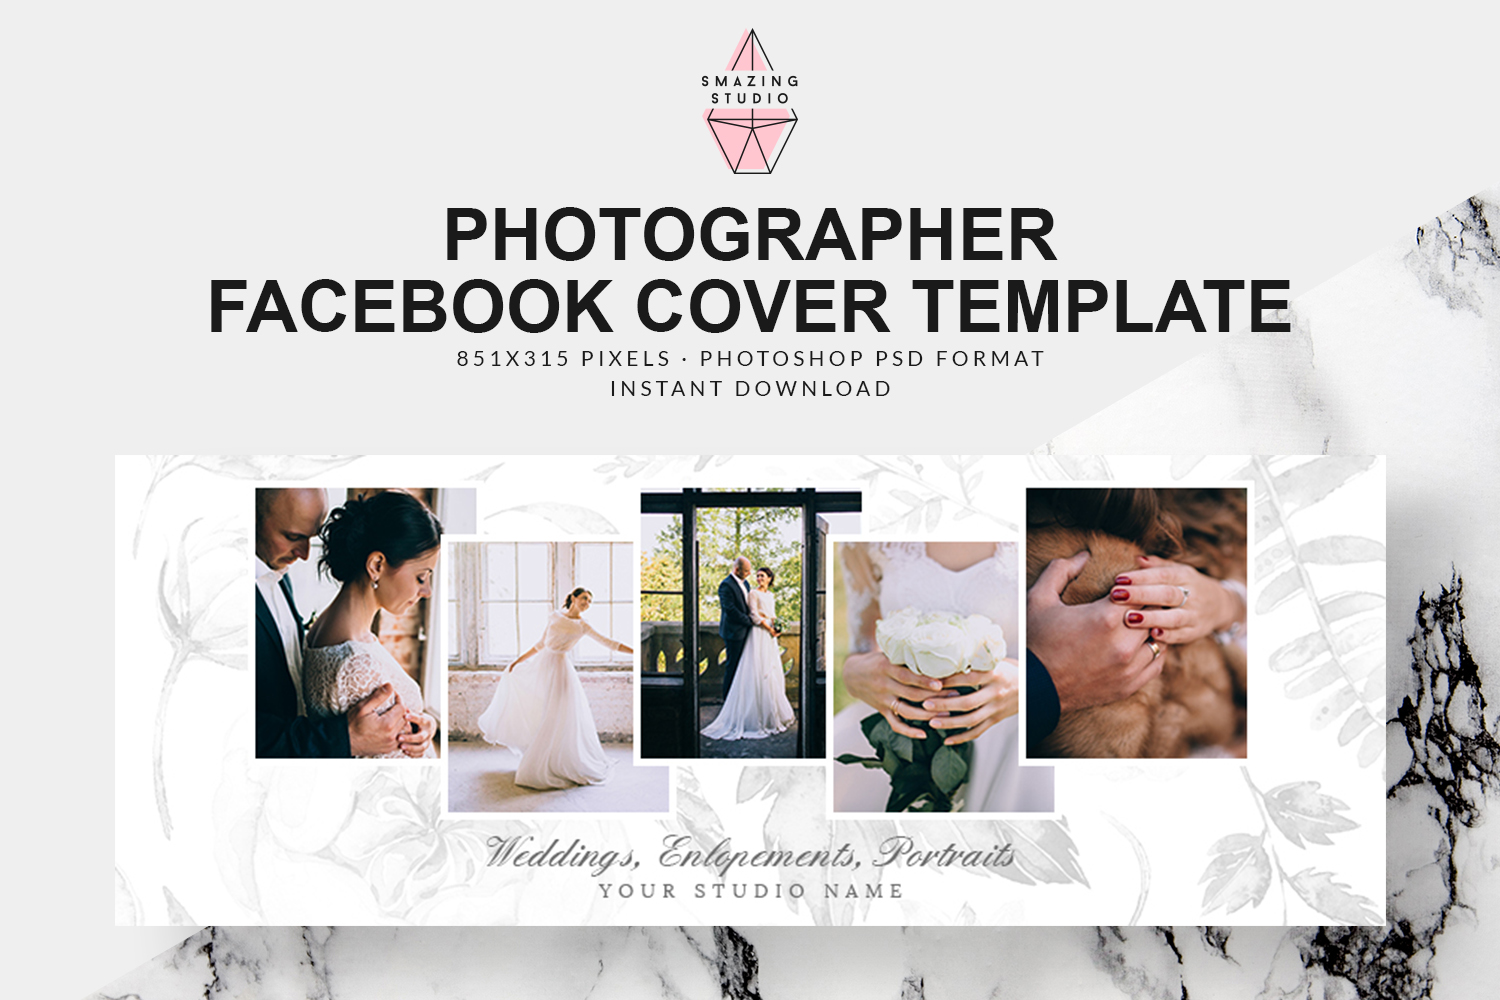 Photographer Facebook Cover Template - FBC009 example image 1